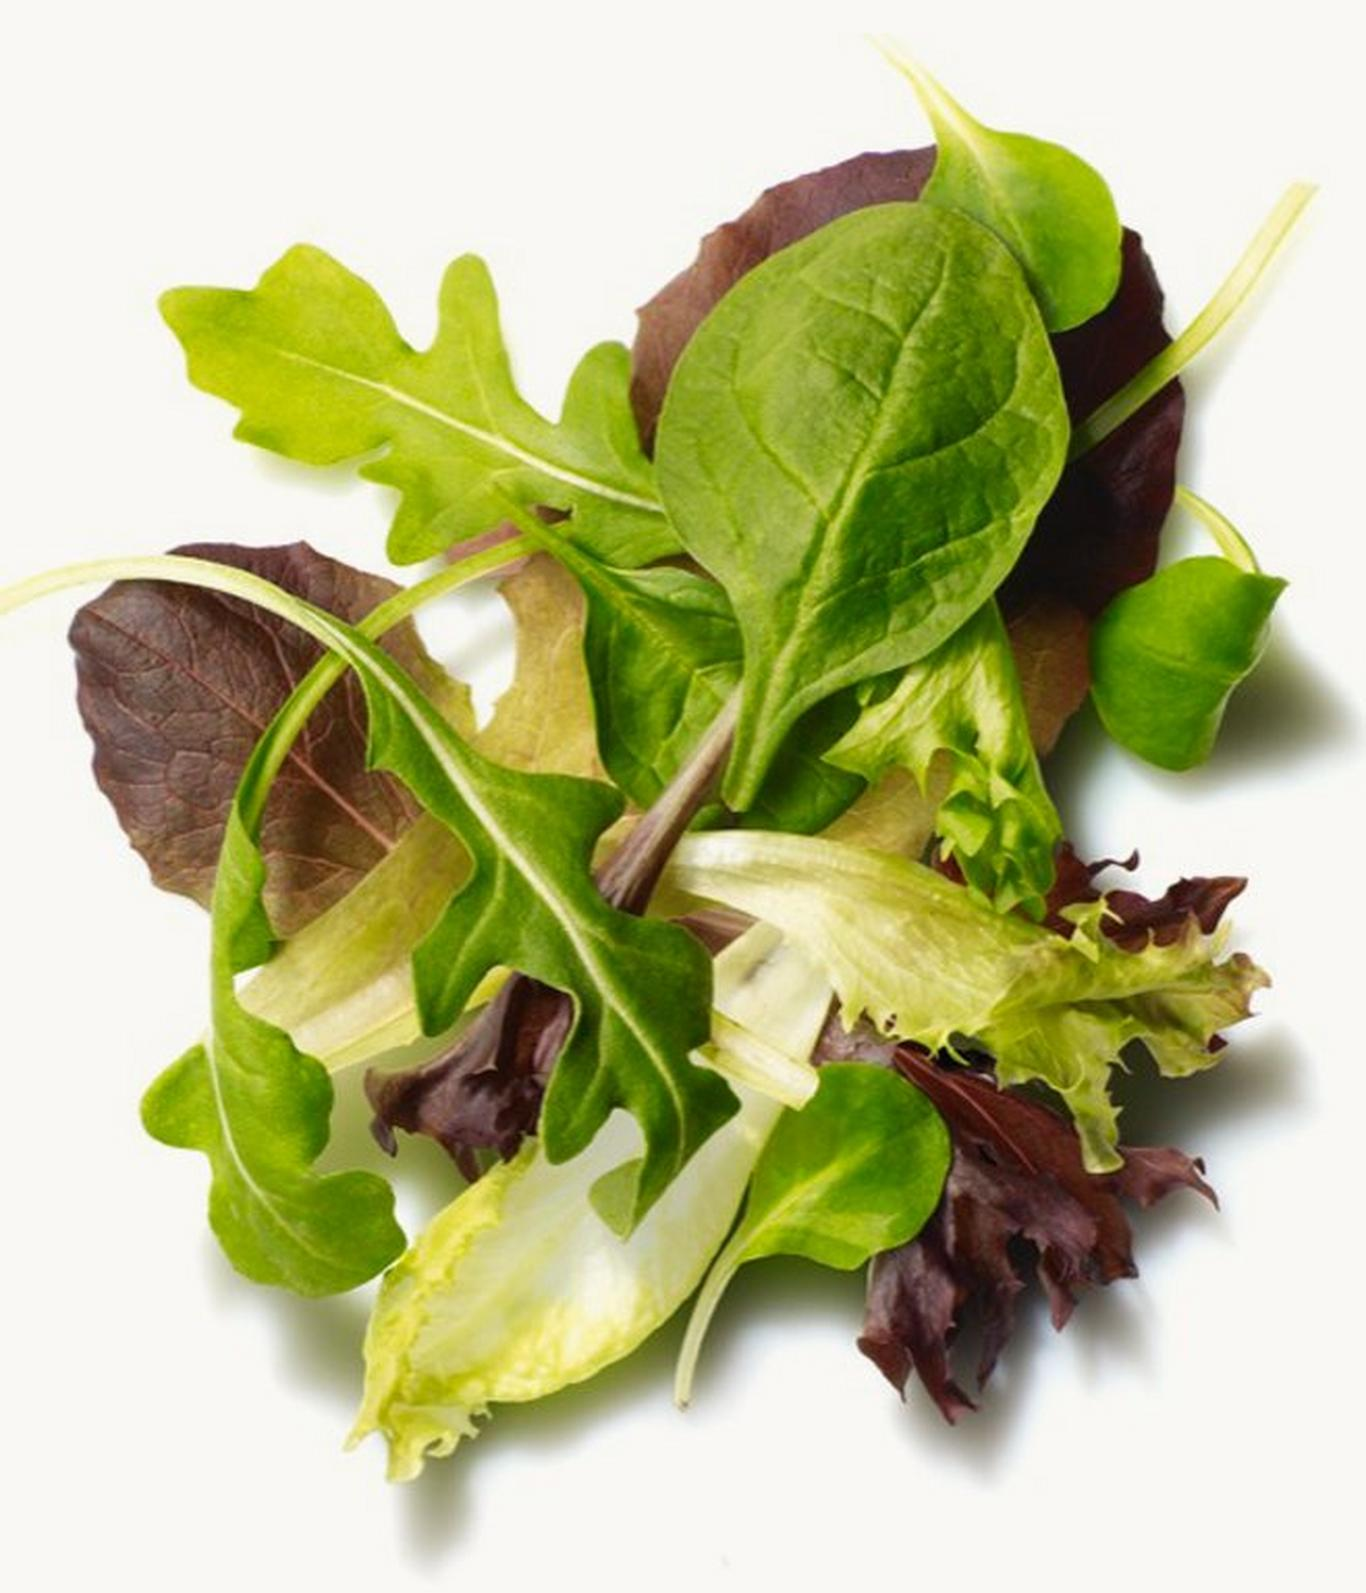 Watercress can help reduce DNA damage, protect against breast cancer cells, improve eye health, improve gene expression of cell protective antioxidant enzymes and assist with weight management.